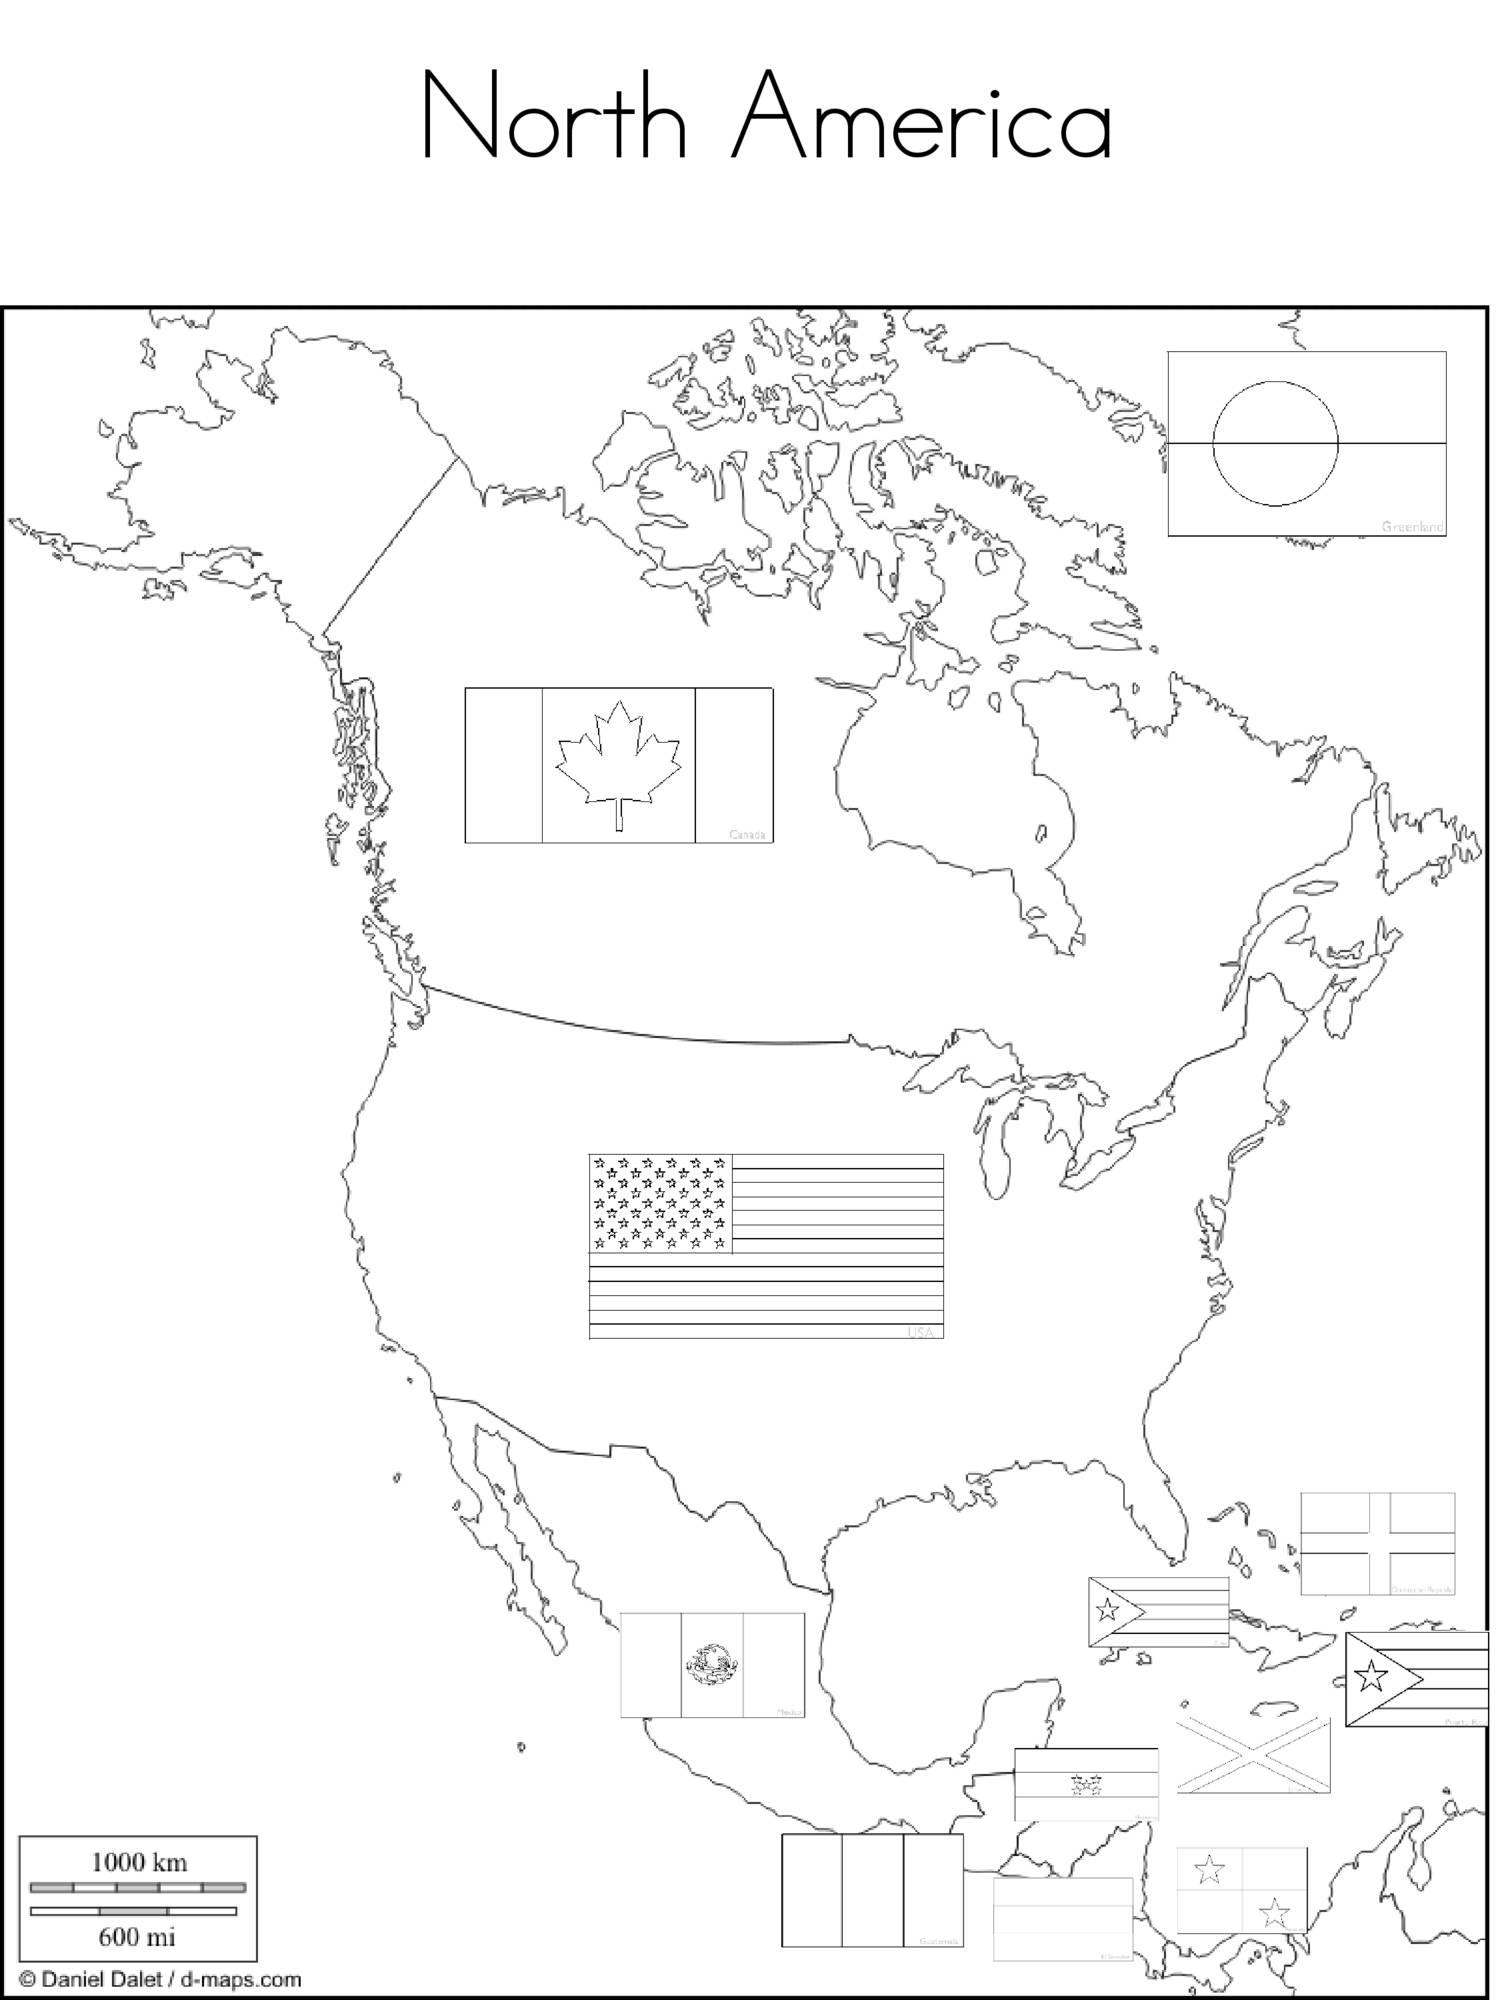 Flags on Map Coloring Pages NorthAmerica SouthAmerica Europe Africa